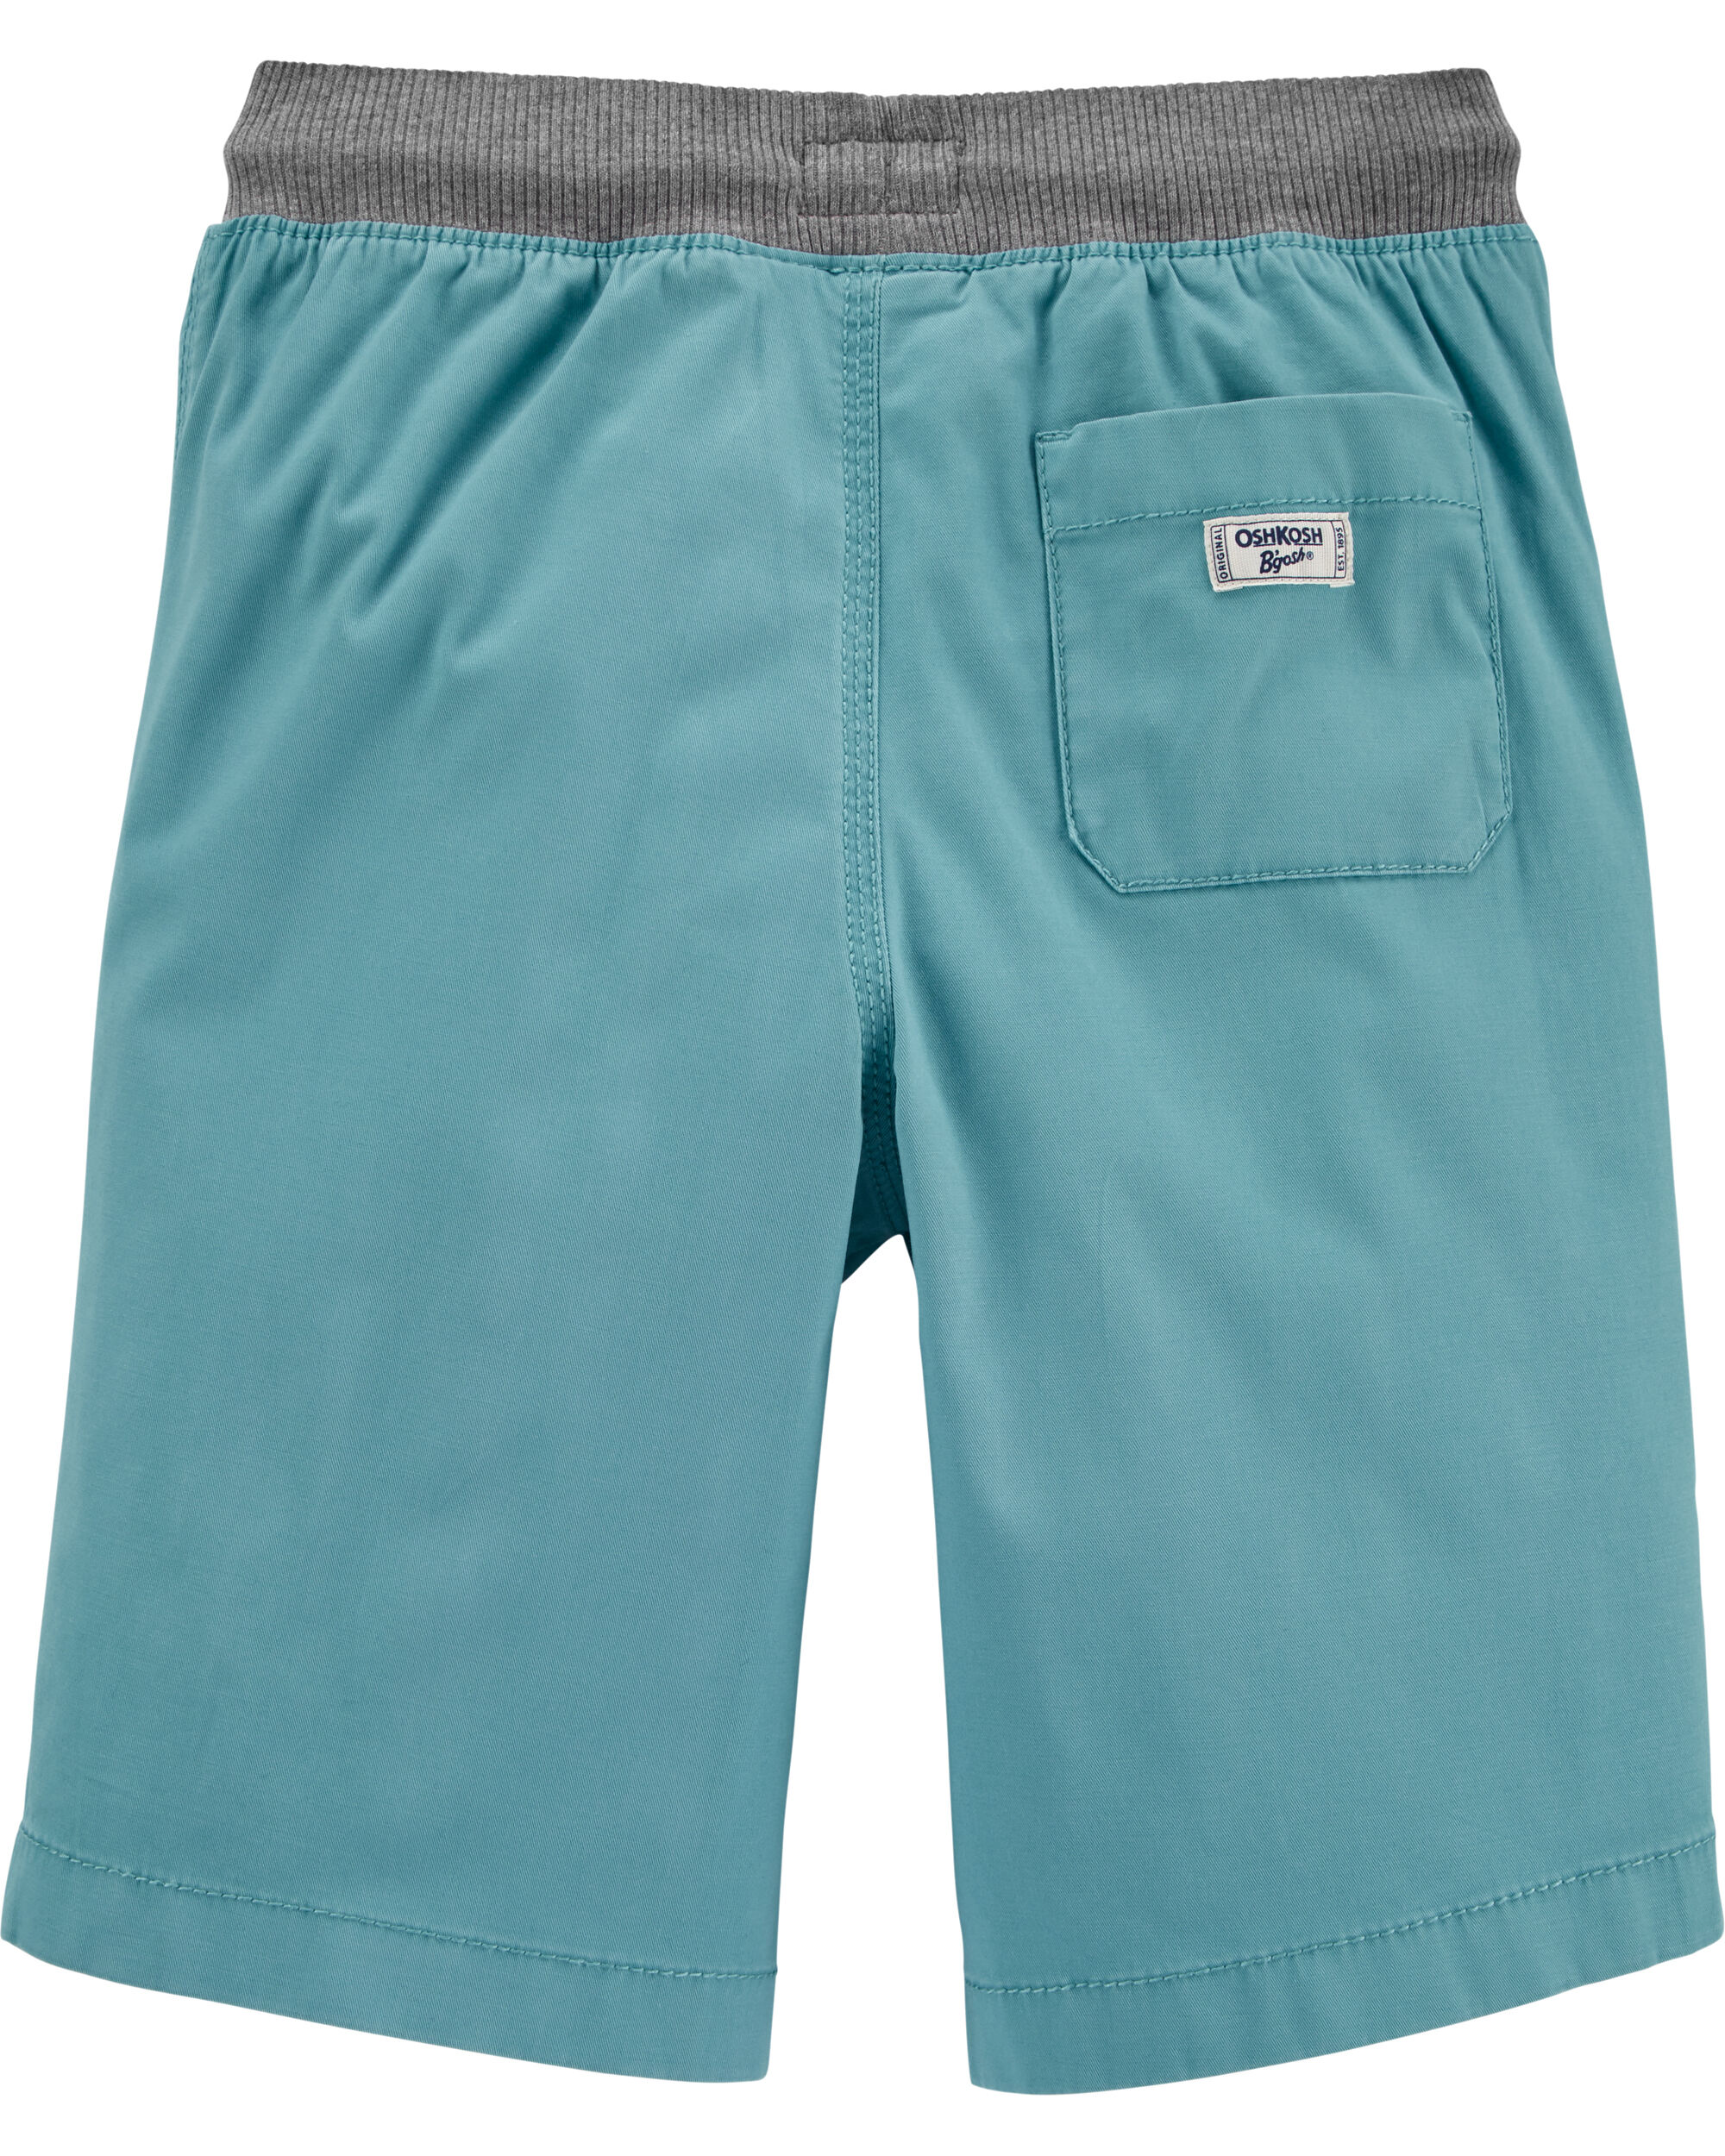 Oshkosh Bgosh Boys Kids Stretch Flat Front Short Osh Kosh Shorts